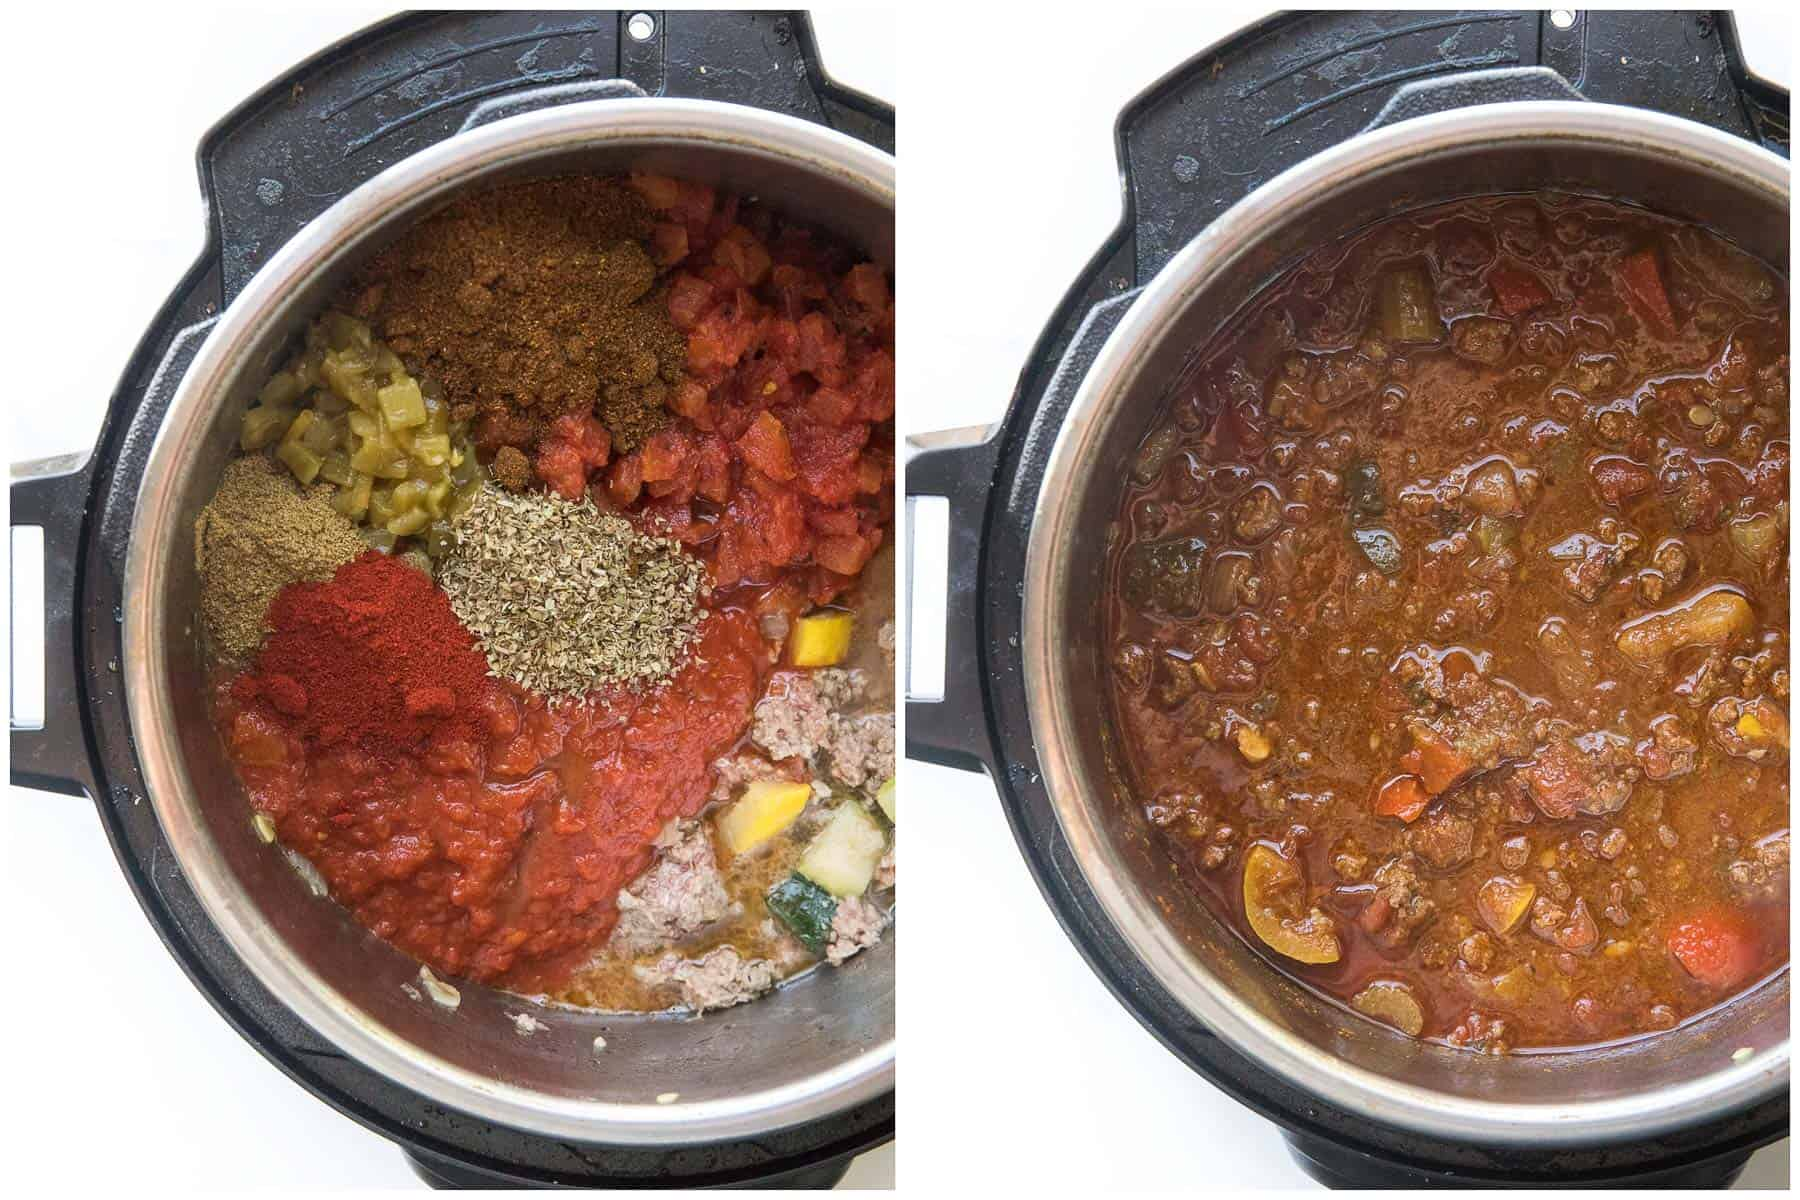 before and after cooking chili in an instant pot